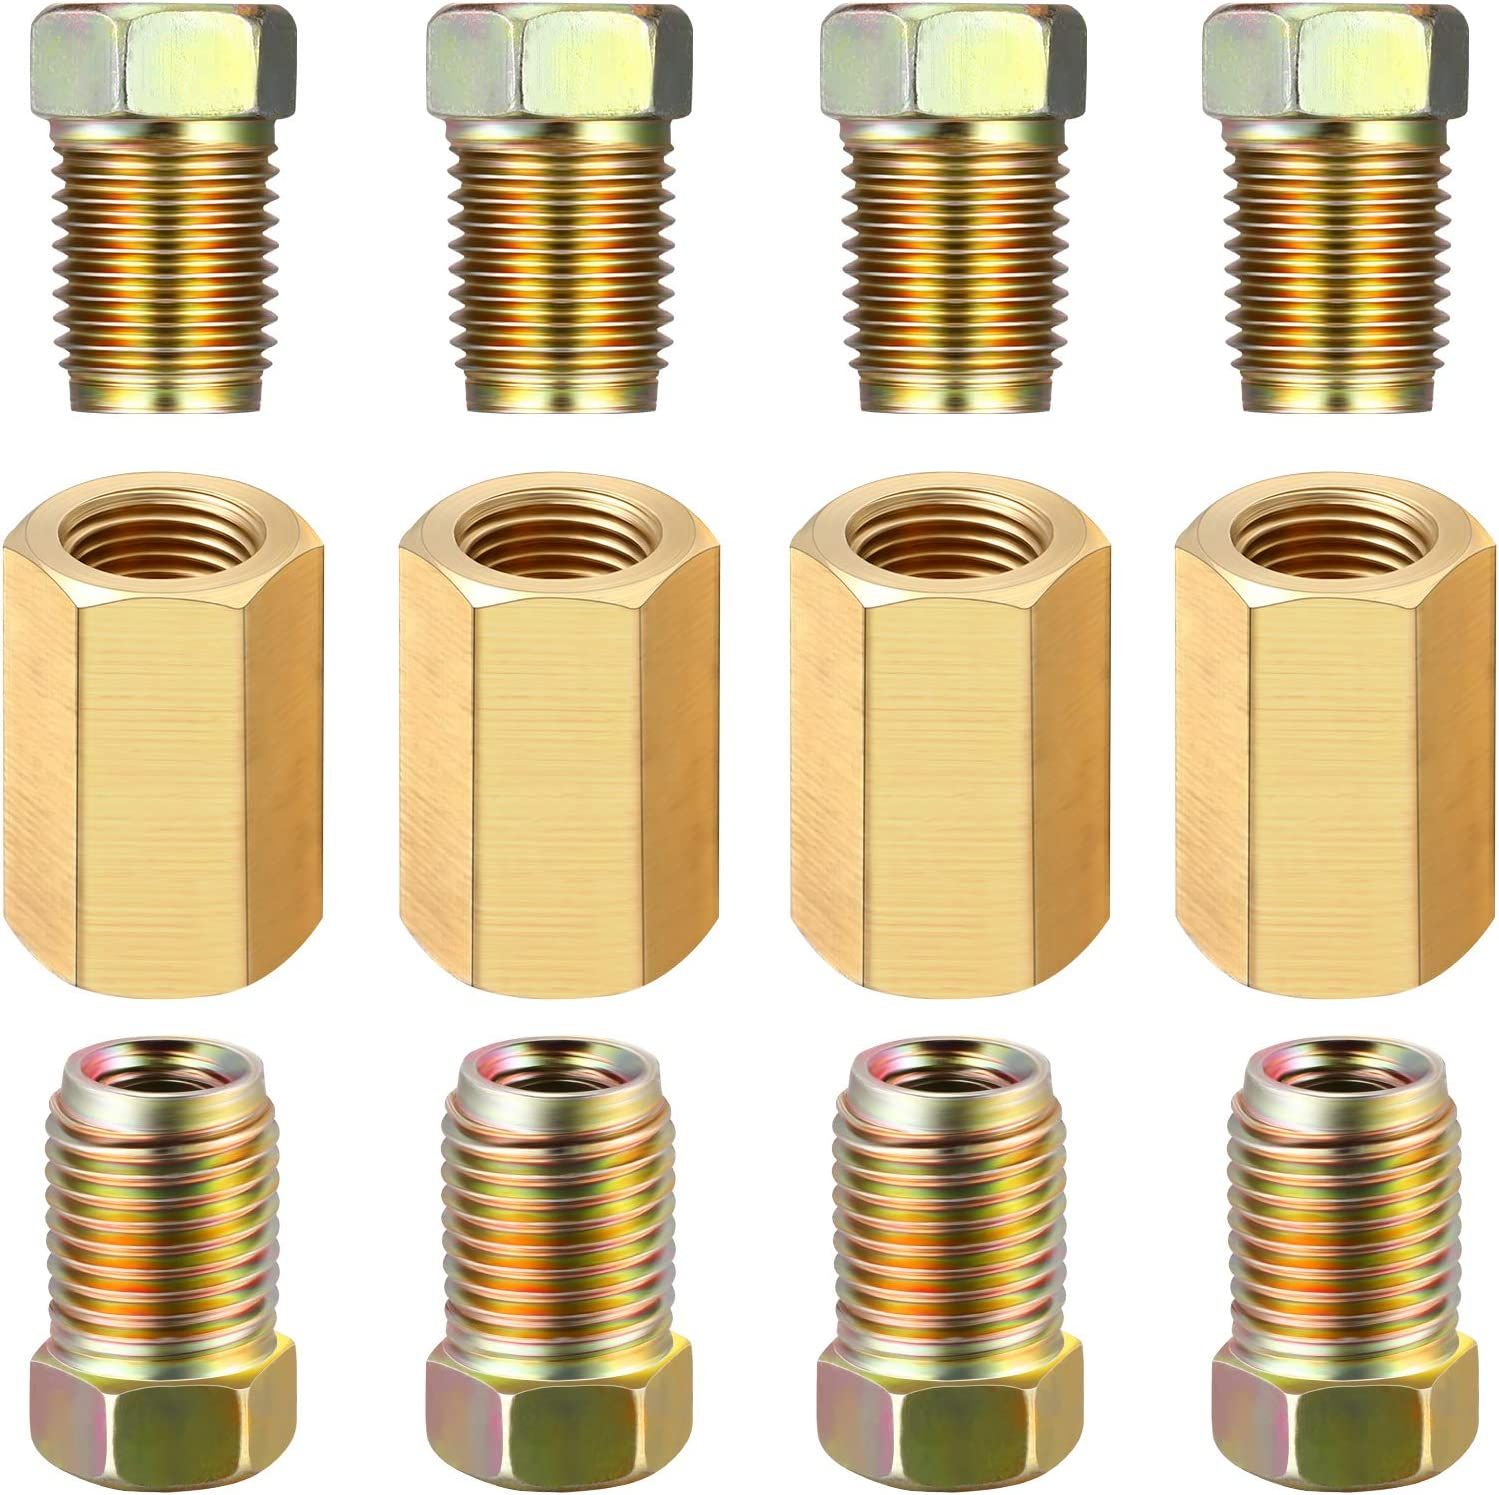 A-Team Performance 12 Pieces 3//8 Inch-24 Threads Brake Line Fittings Assortment for 3//16 Inch Tube 4 Unions, 8 Nuts